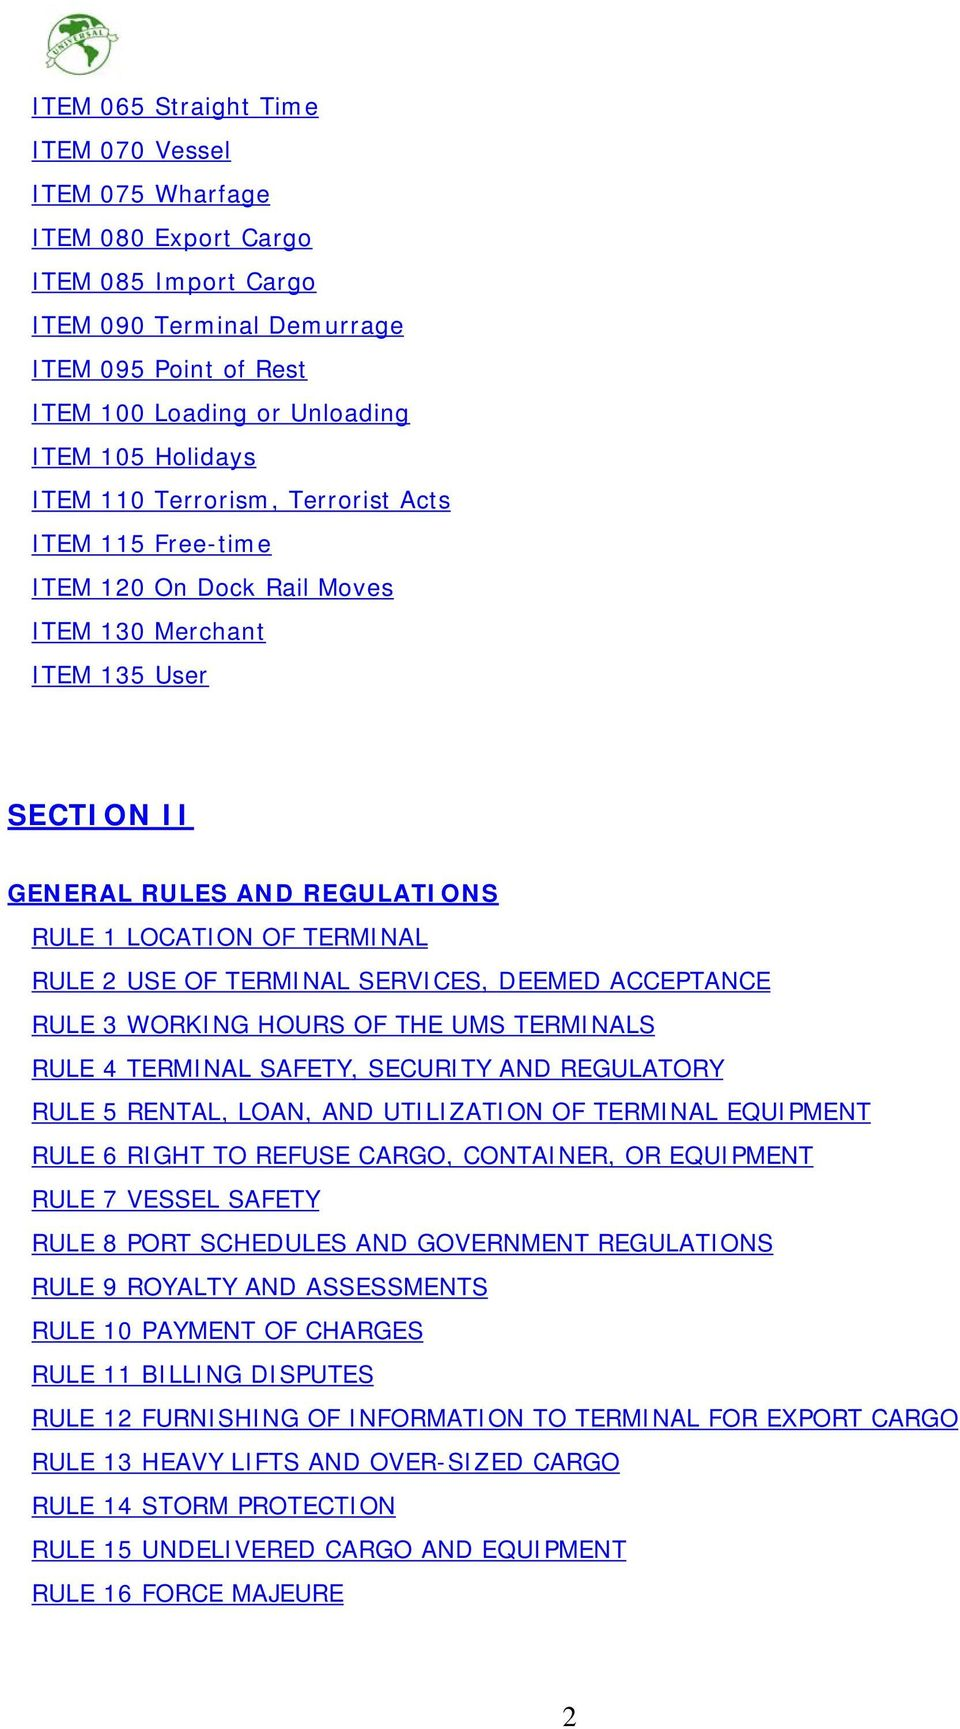 TERMINAL SERVICES, DEEMED ACCEPTANCE RULE 3 WORKING HOURS OF THE UMS TERMINALS RULE 4 TERMINAL SAFETY, SECURITY AND REGULATORY RULE 5 RENTAL, LOAN, AND UTILIZATION OF TERMINAL EQUIPMENT RULE 6 RIGHT